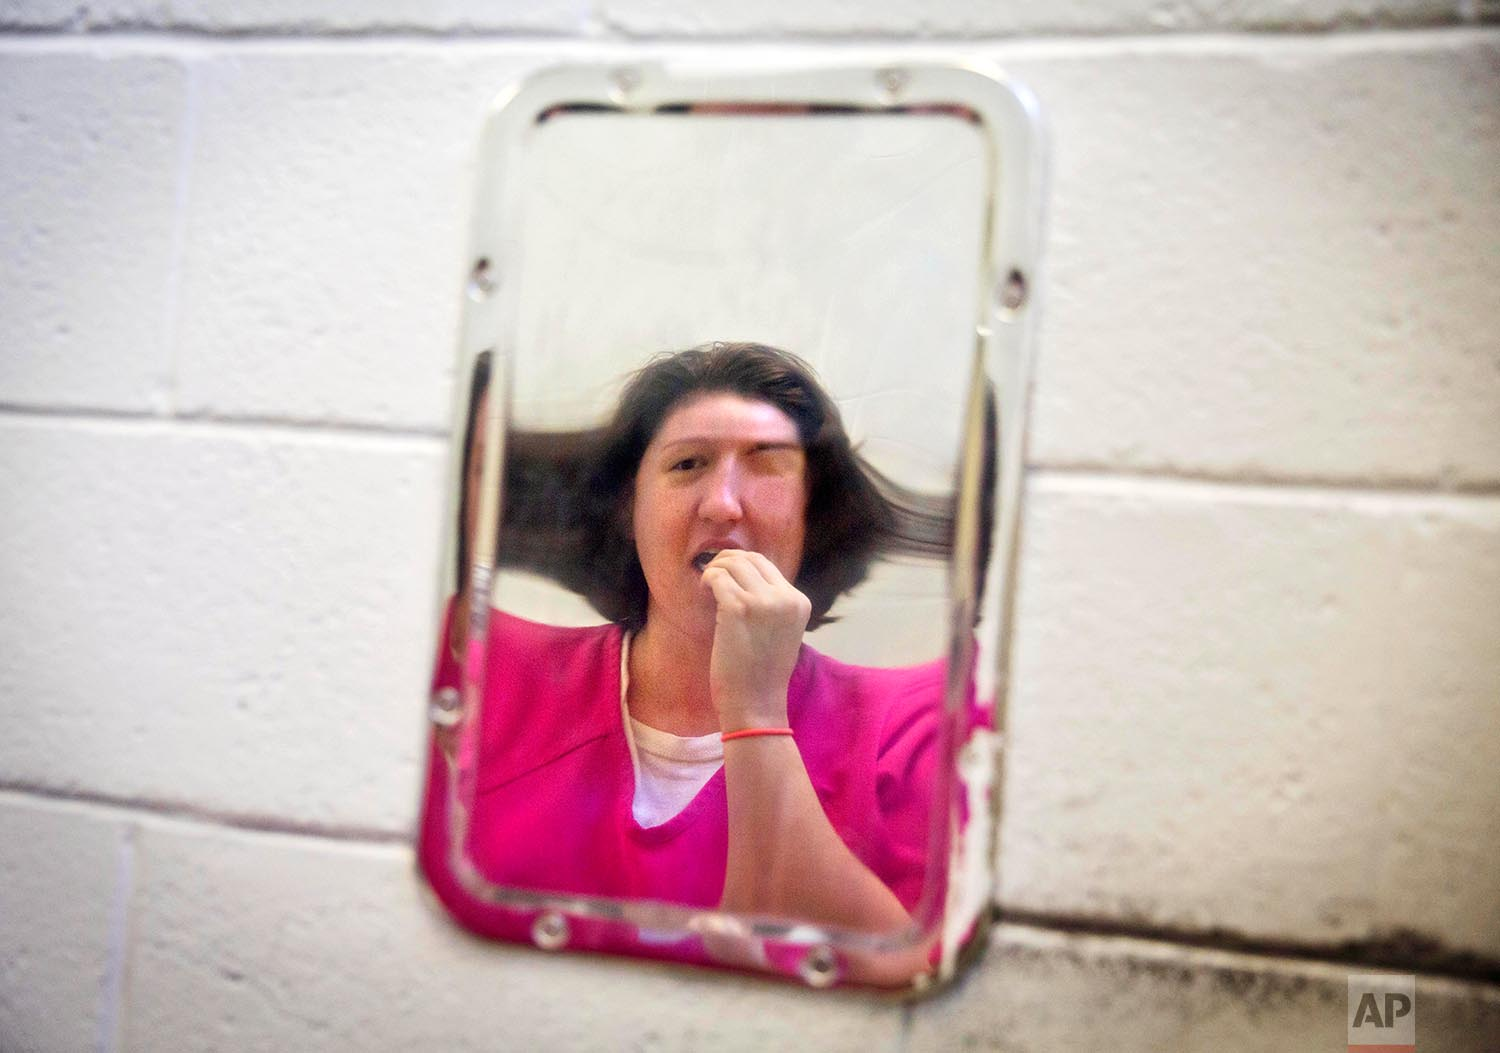 Samantha Marlow brushes her teeth while looking in a distorted metal mirror in her cell at the Campbell County Jail in Jacksboro, Tenn., Tuesday, May 8, 2018. (AP Photo/David Goldman)